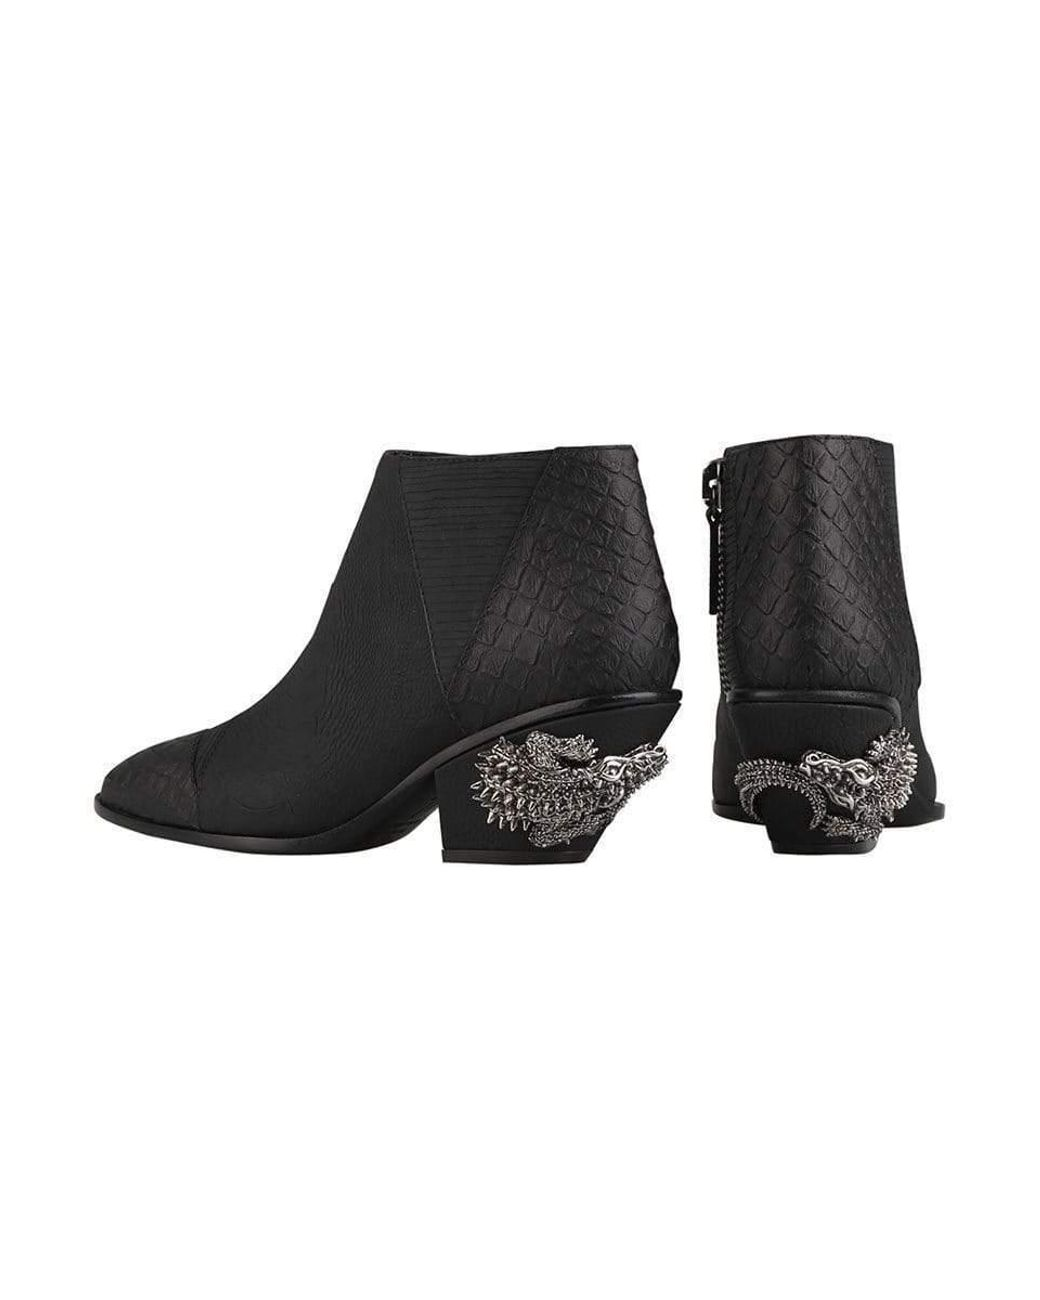 71a402e831aff Giuseppe Zanotti Kevan Alligator Print Ankle Boots in Black - Save 5% - Lyst